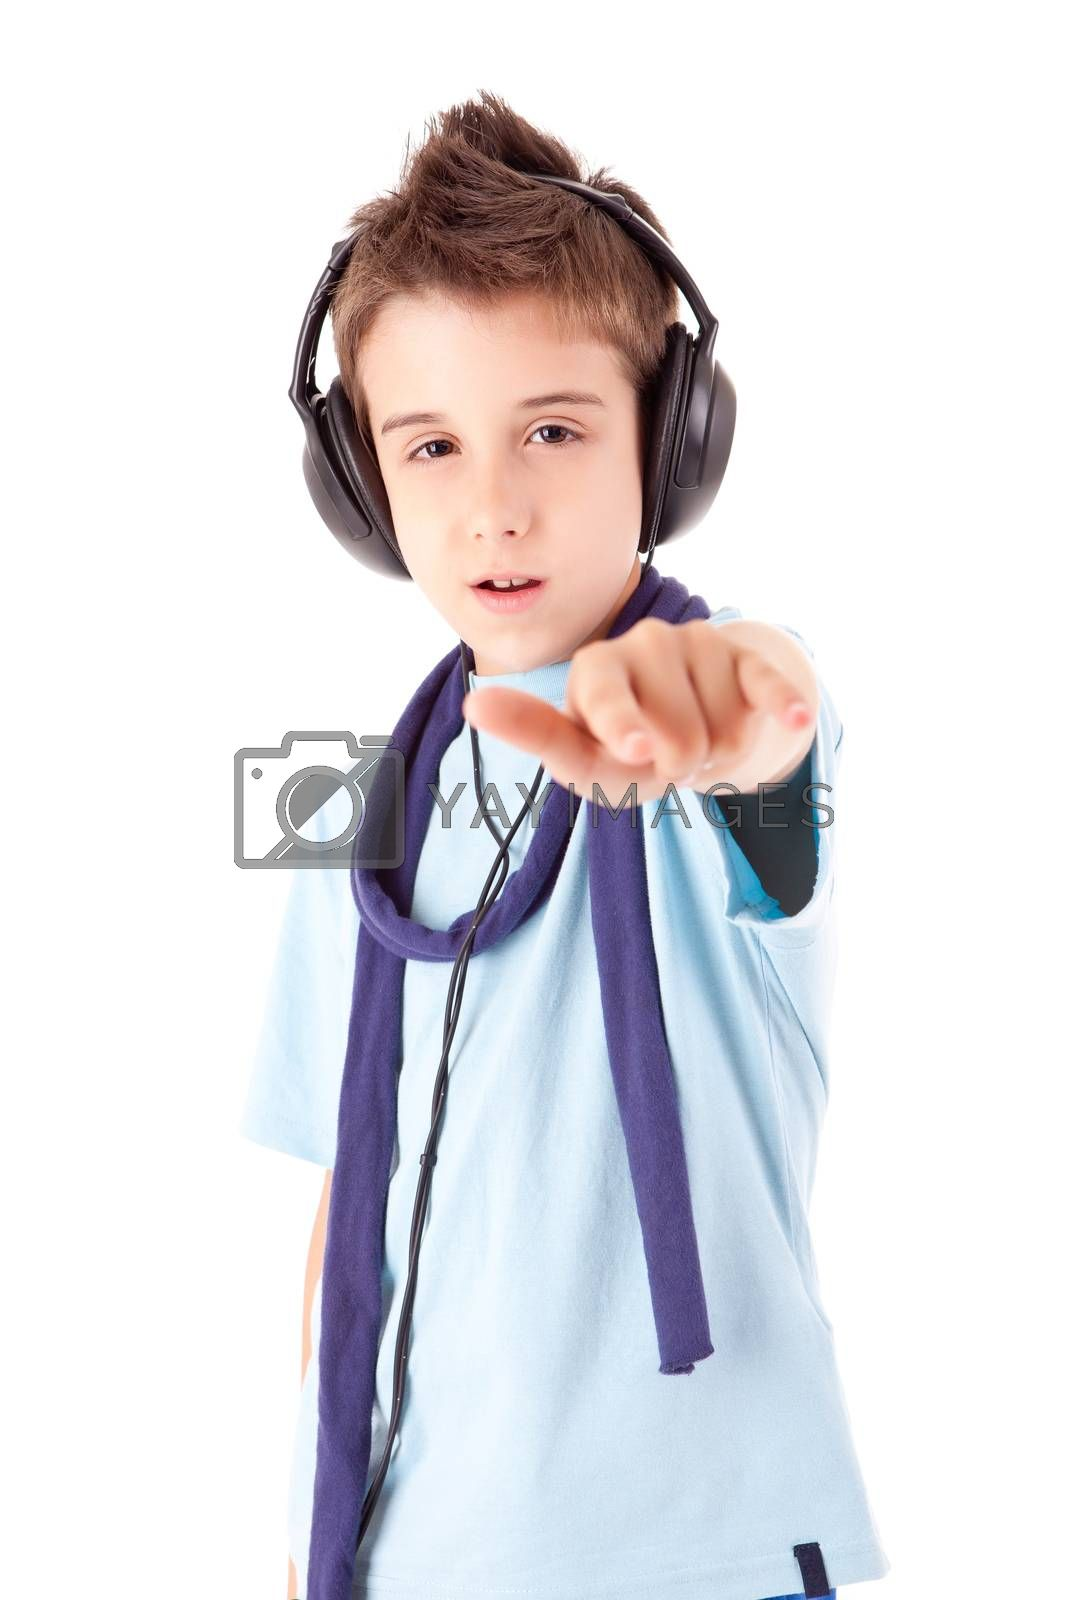 Cute little boy enjoying music using headphones by jolopes